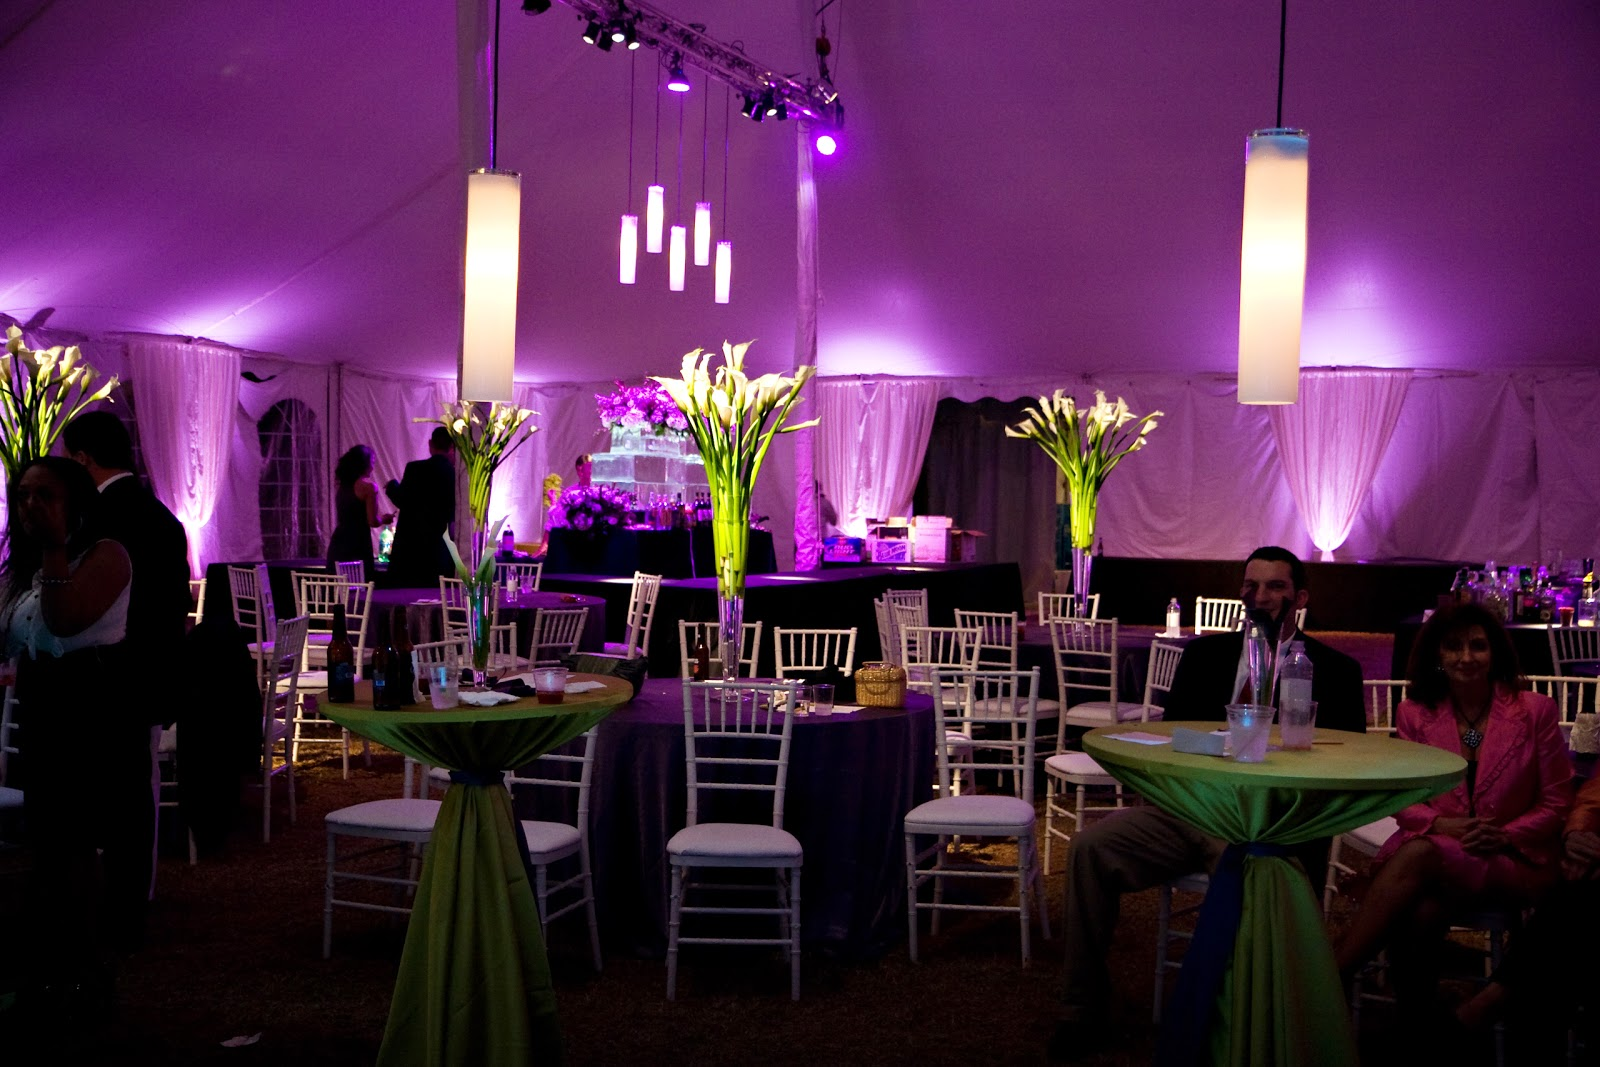 Wedding Reception Tent Decorations Ideas